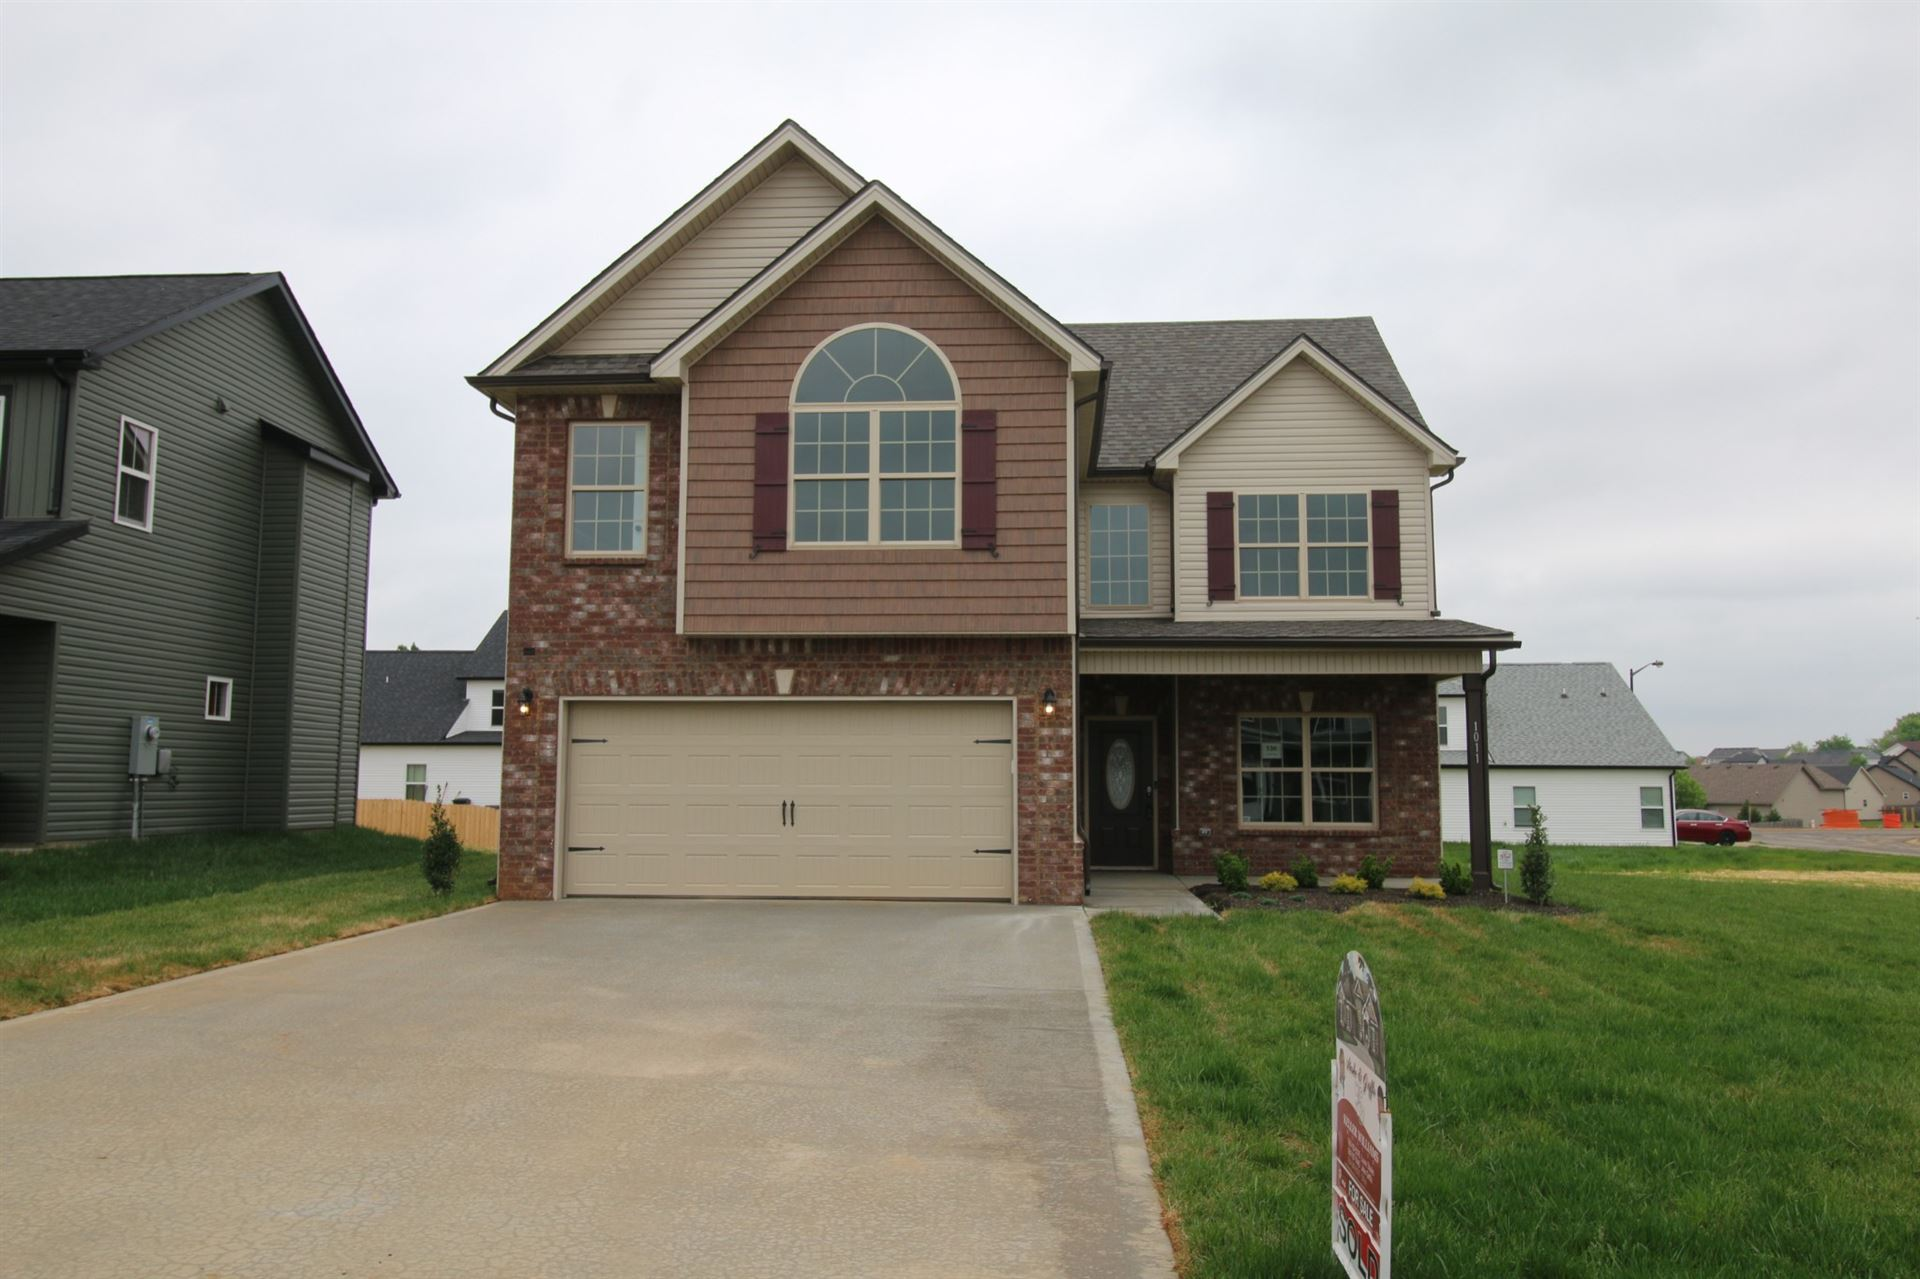 536 Autumn Creek, Clarksville, TN 37042 - MLS#: 2213290